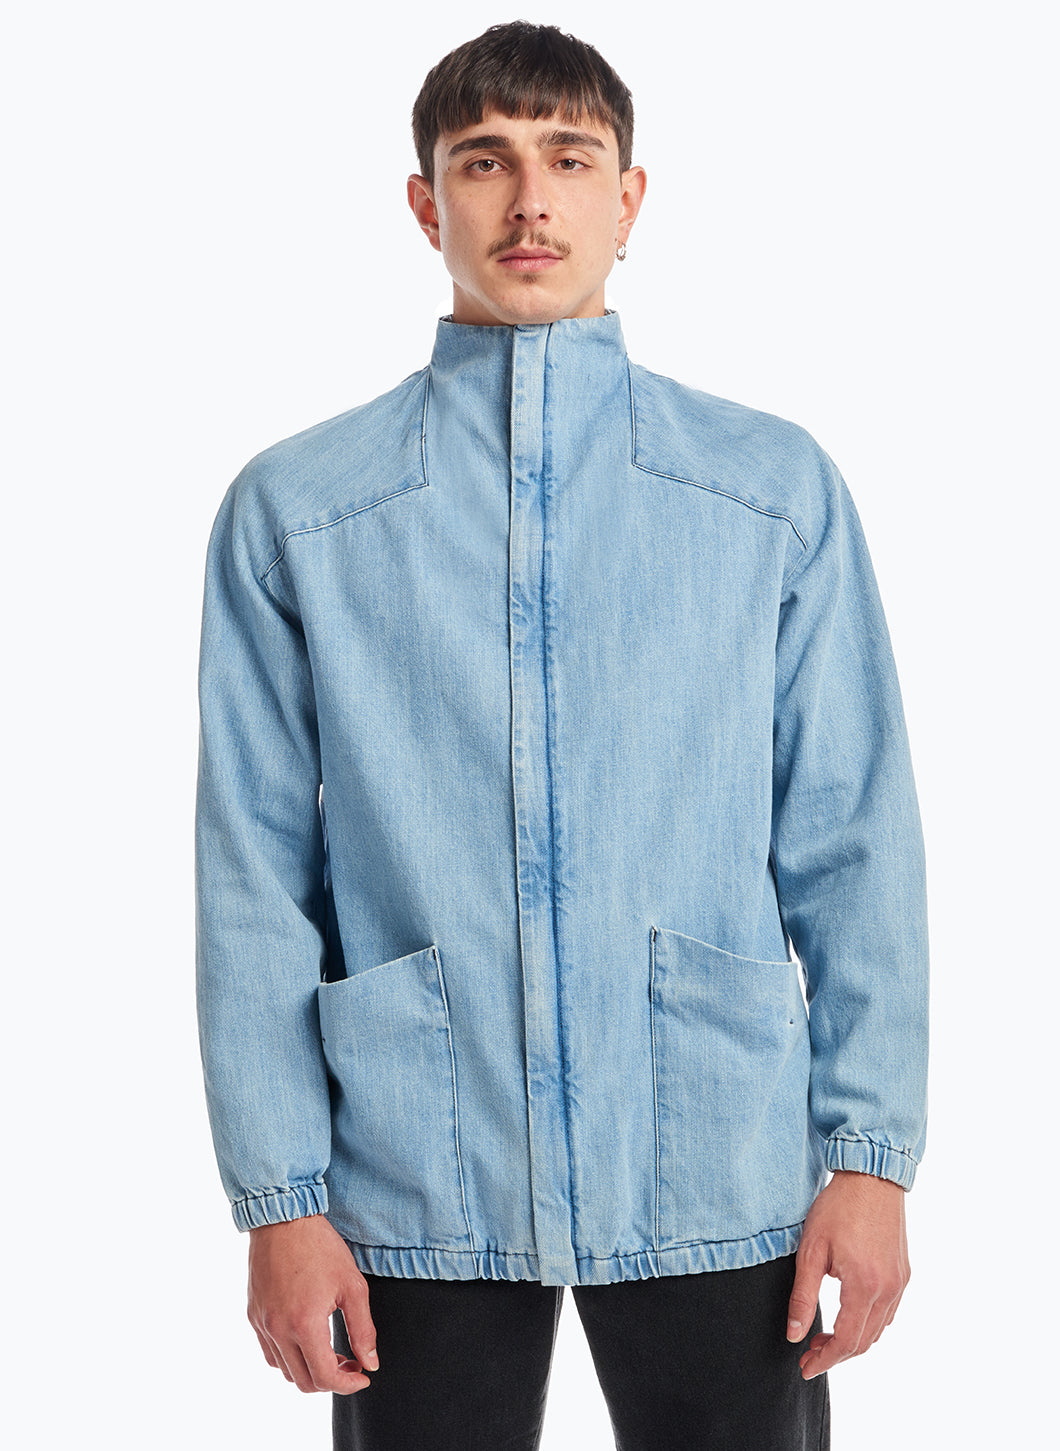 Bomber Jacket with Funnel Neck in Bleached Denim